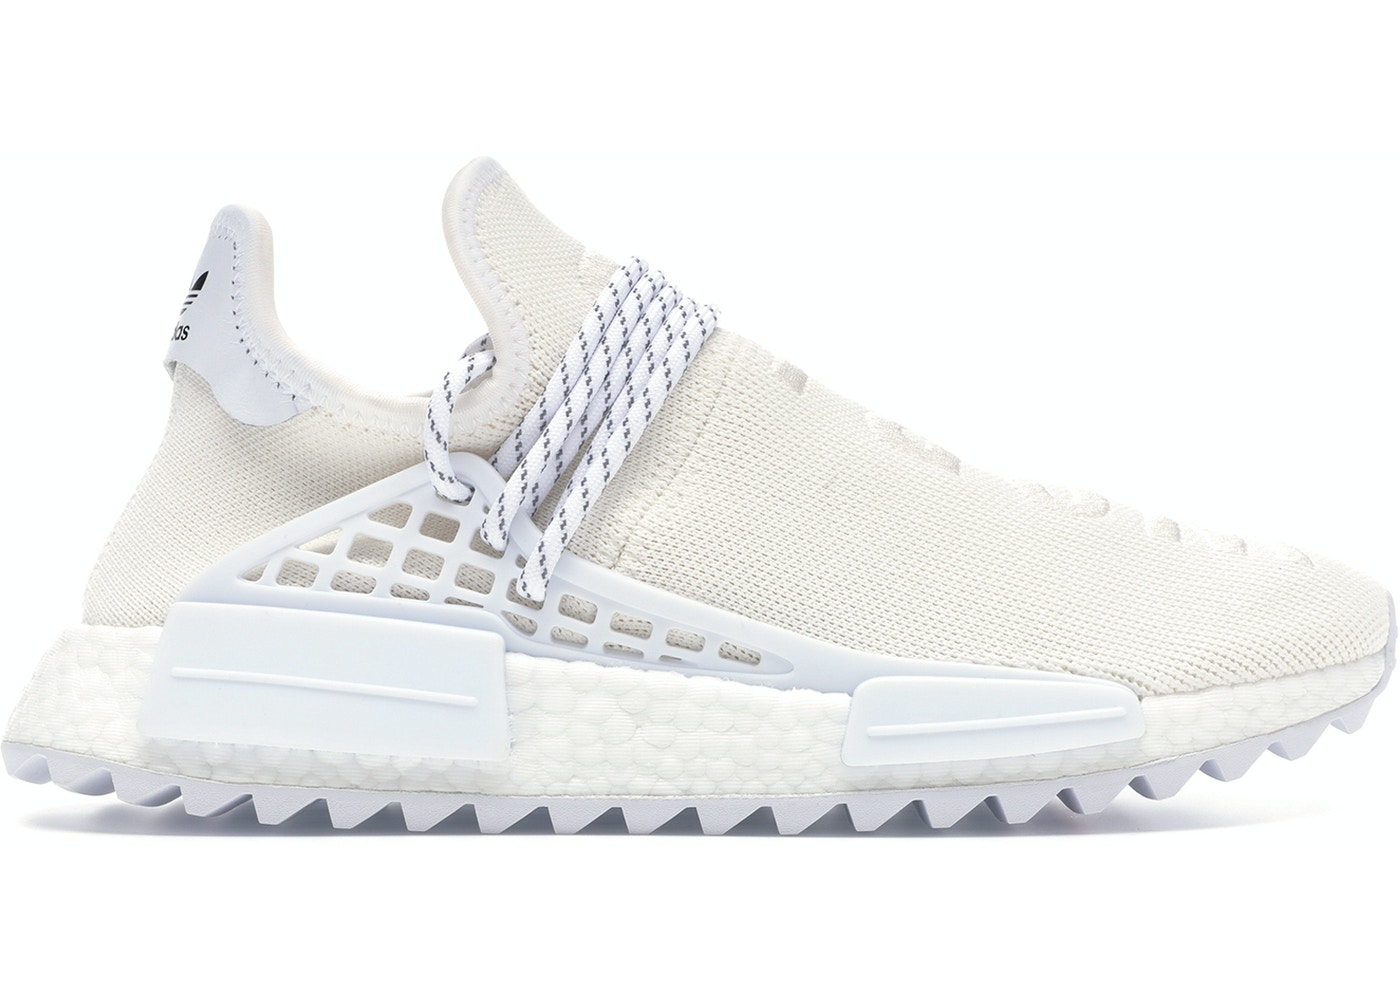 4d3f42164f783 Buy adidas NMD HU Shoes   Deadstock Sneakers